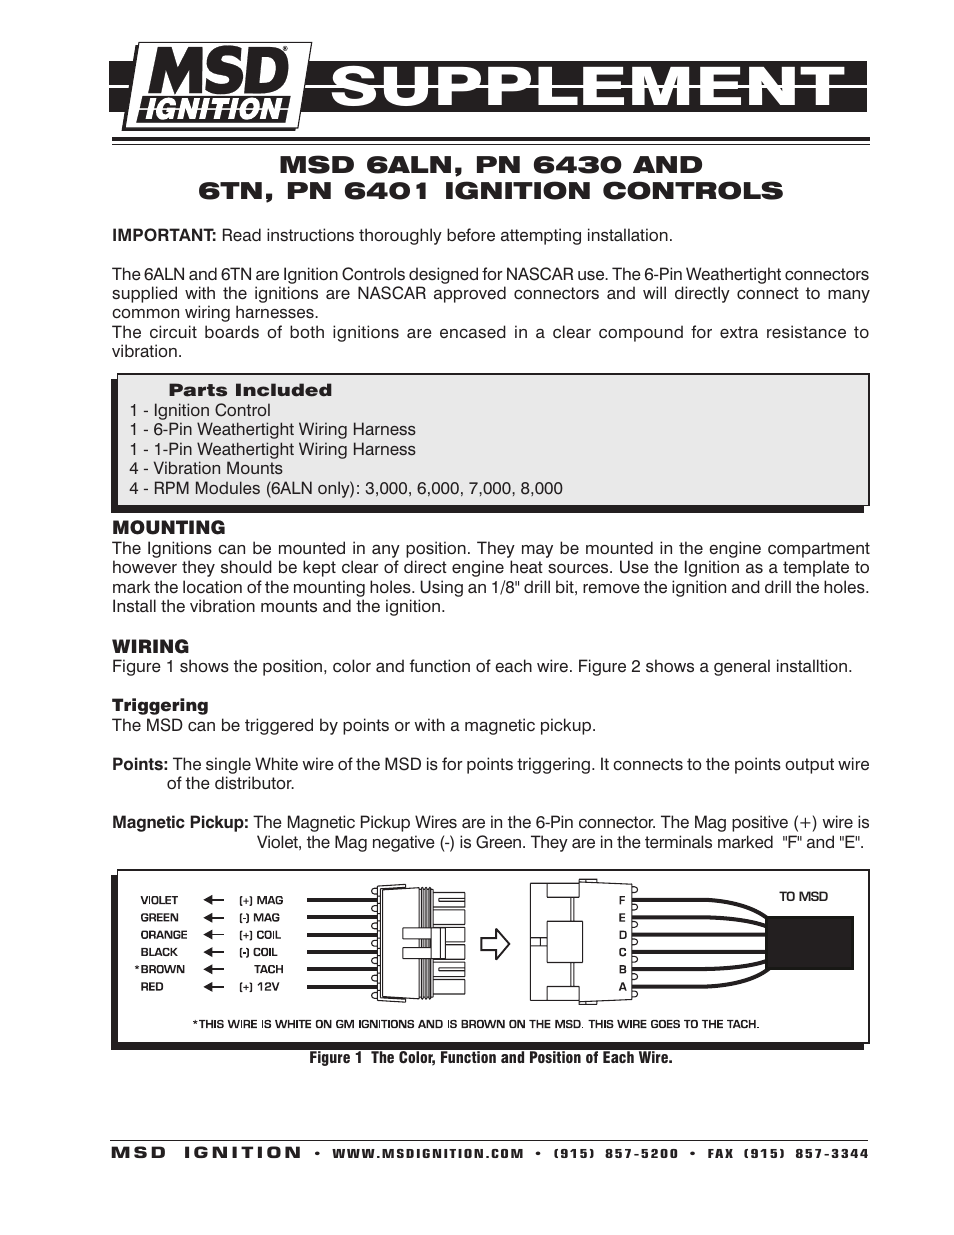 msd 6430 6aln ignition control supplement page1 tg66m3170c00 wiring diagram,m \u2022 indy500 co  at webbmarketing.co